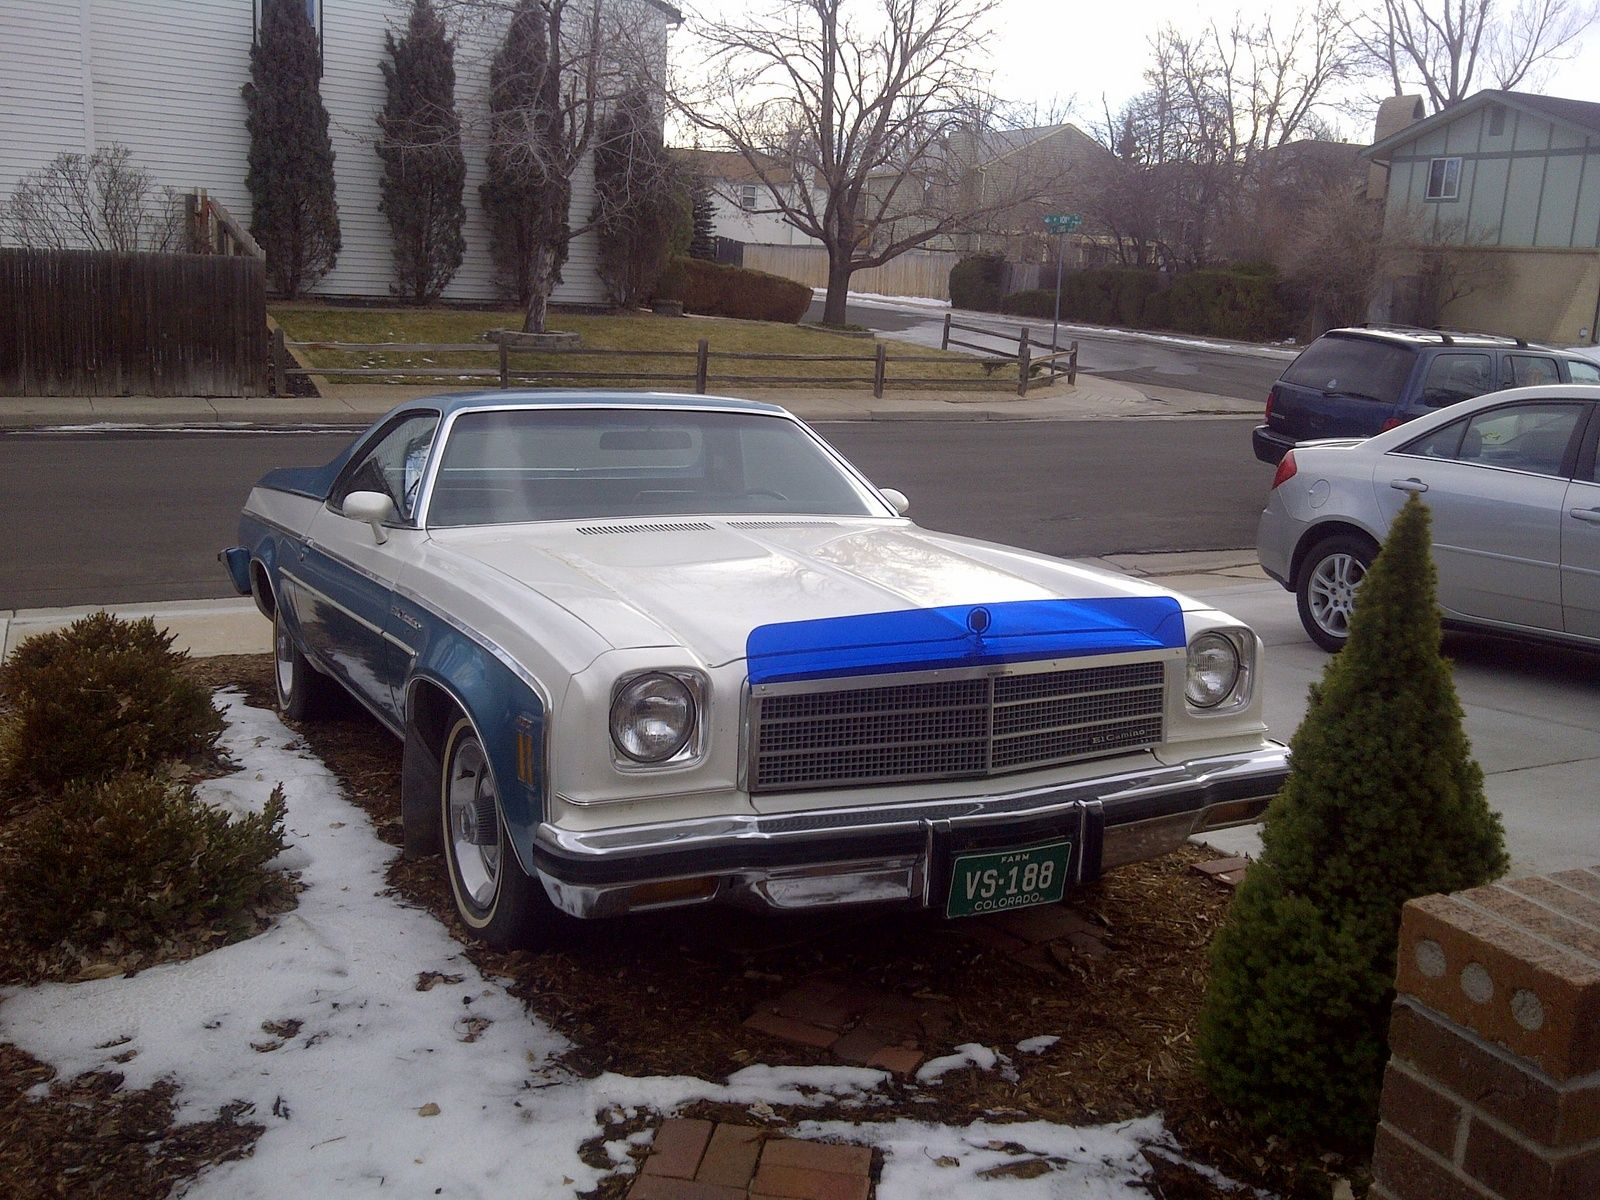 medium resolution of 1974 chevrolet el camino pictures see 25 pics for 1974 chevrolet el camino browse interior and exterior photos for 1974 chevrolet el camino